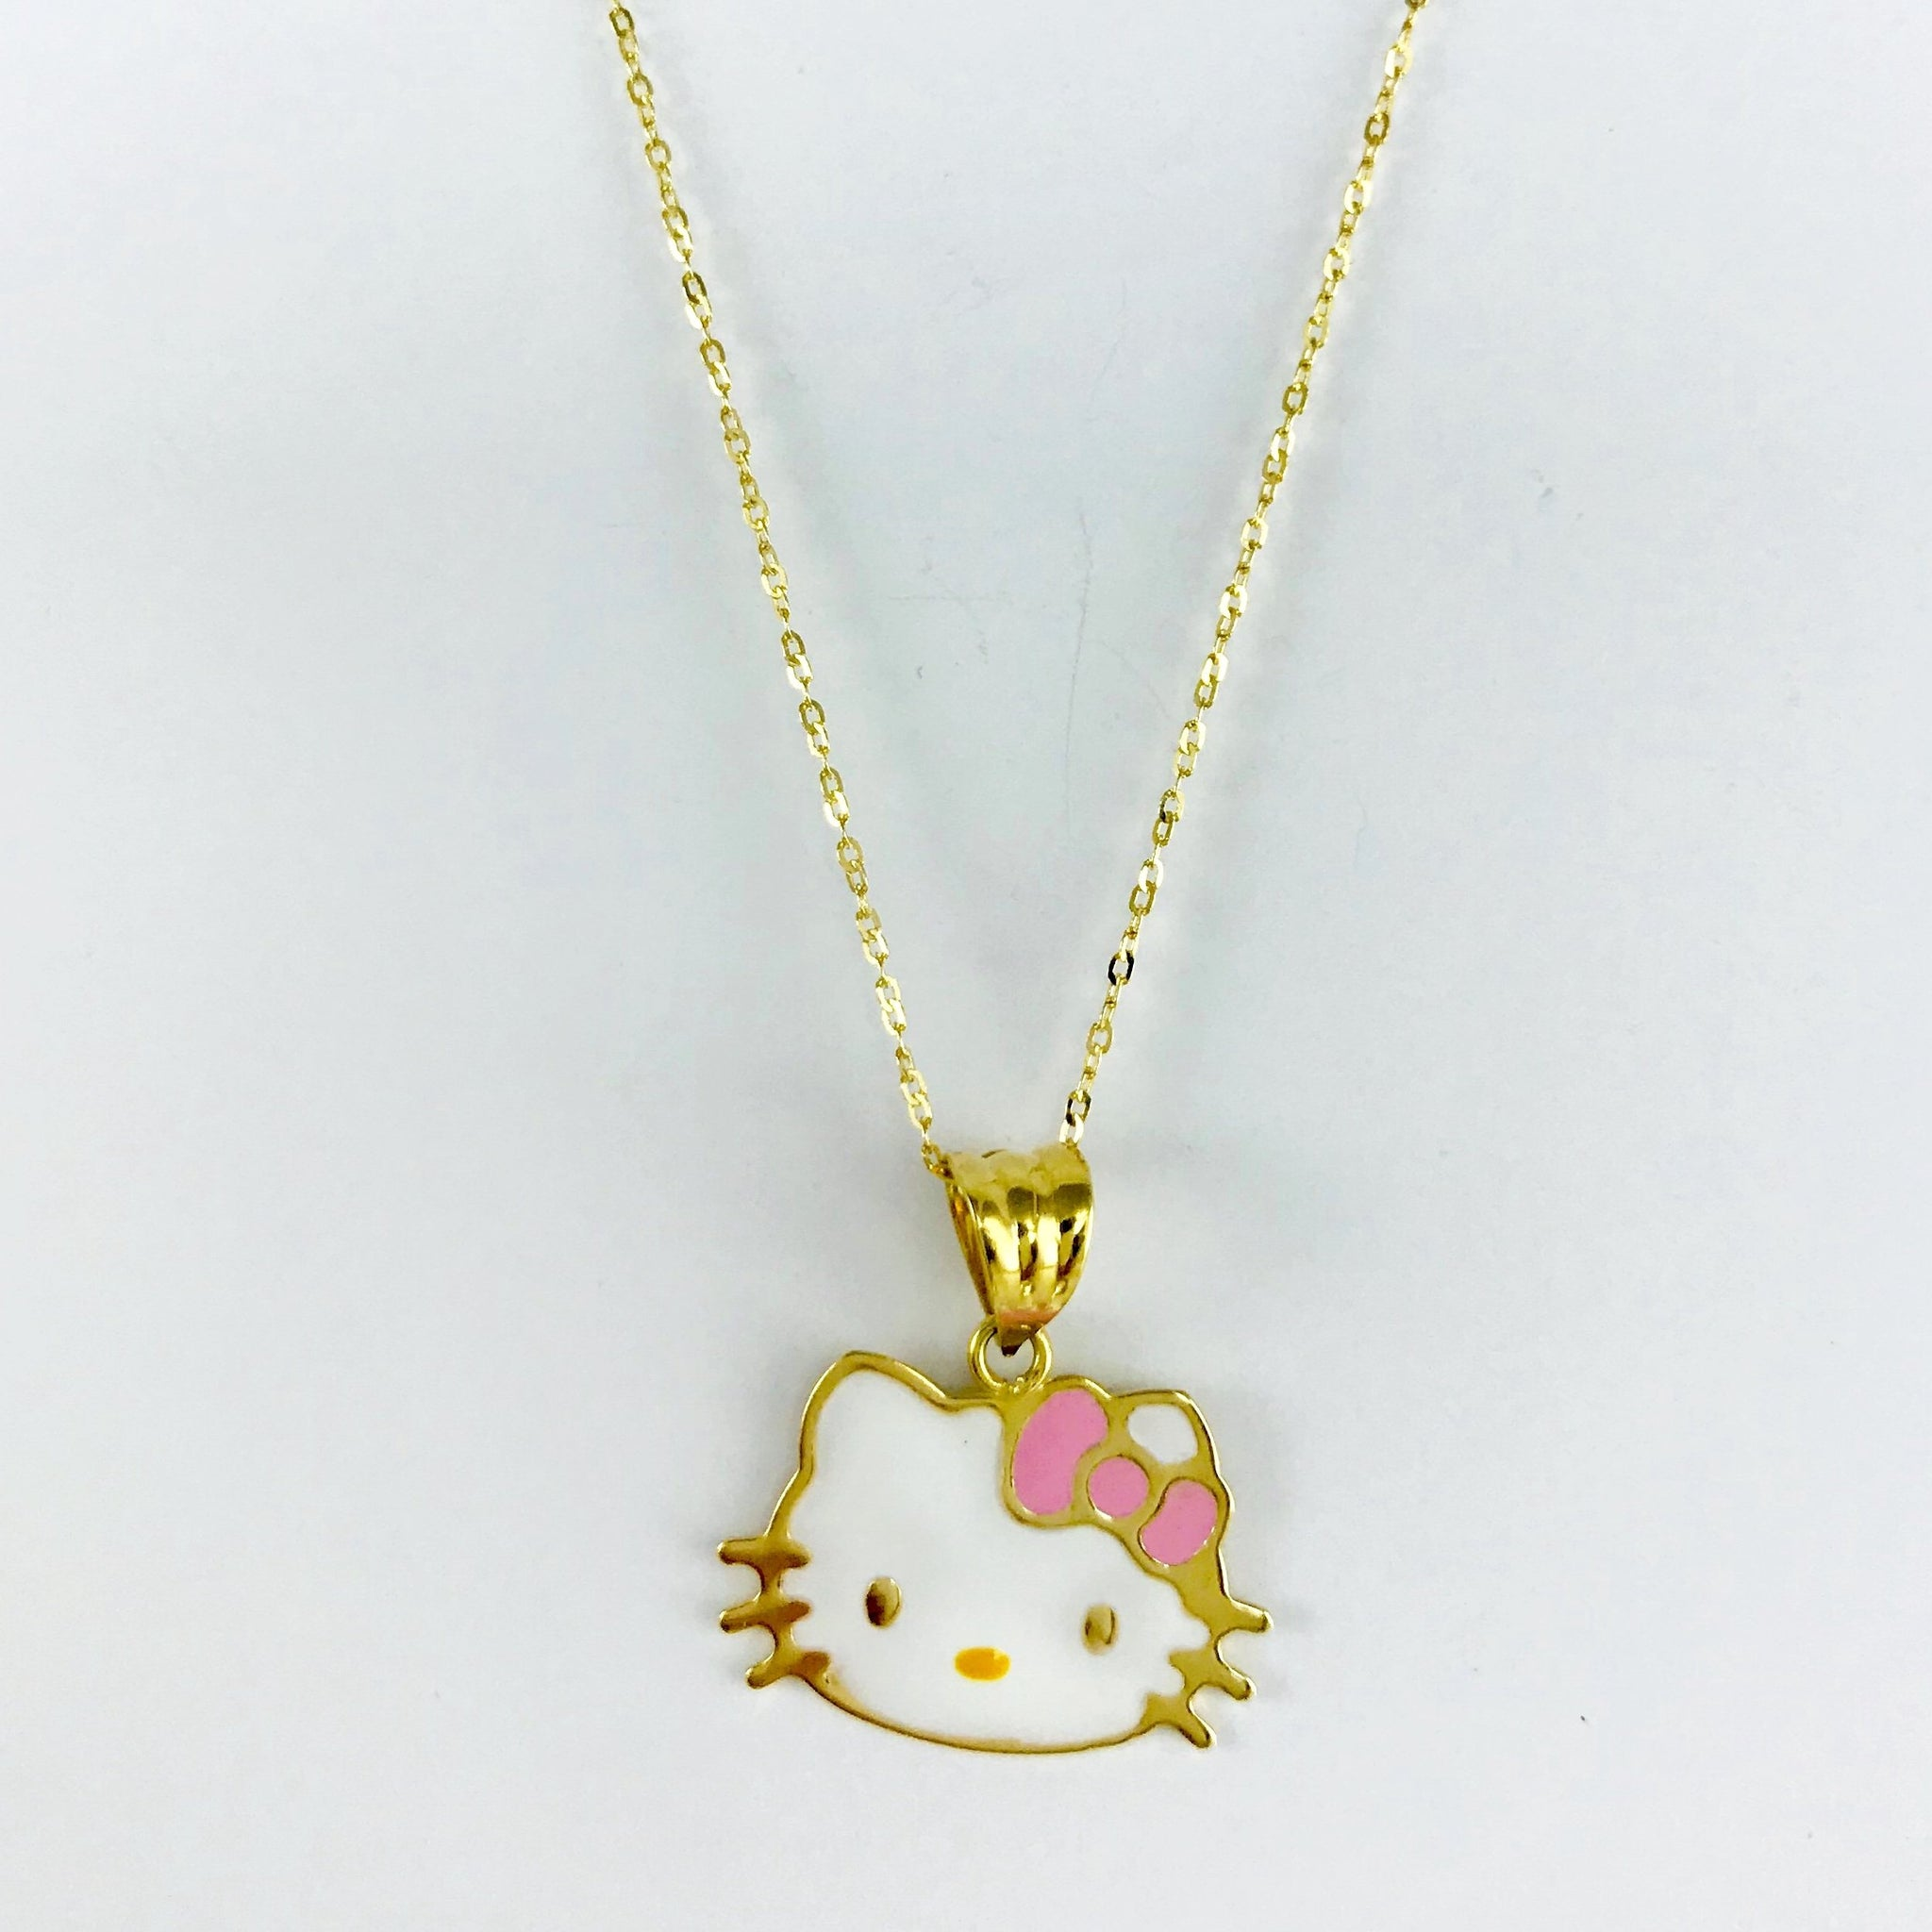 55b80bd91 Real Gold Chain With Gold Hello Kitty Pendant – Gold Zone